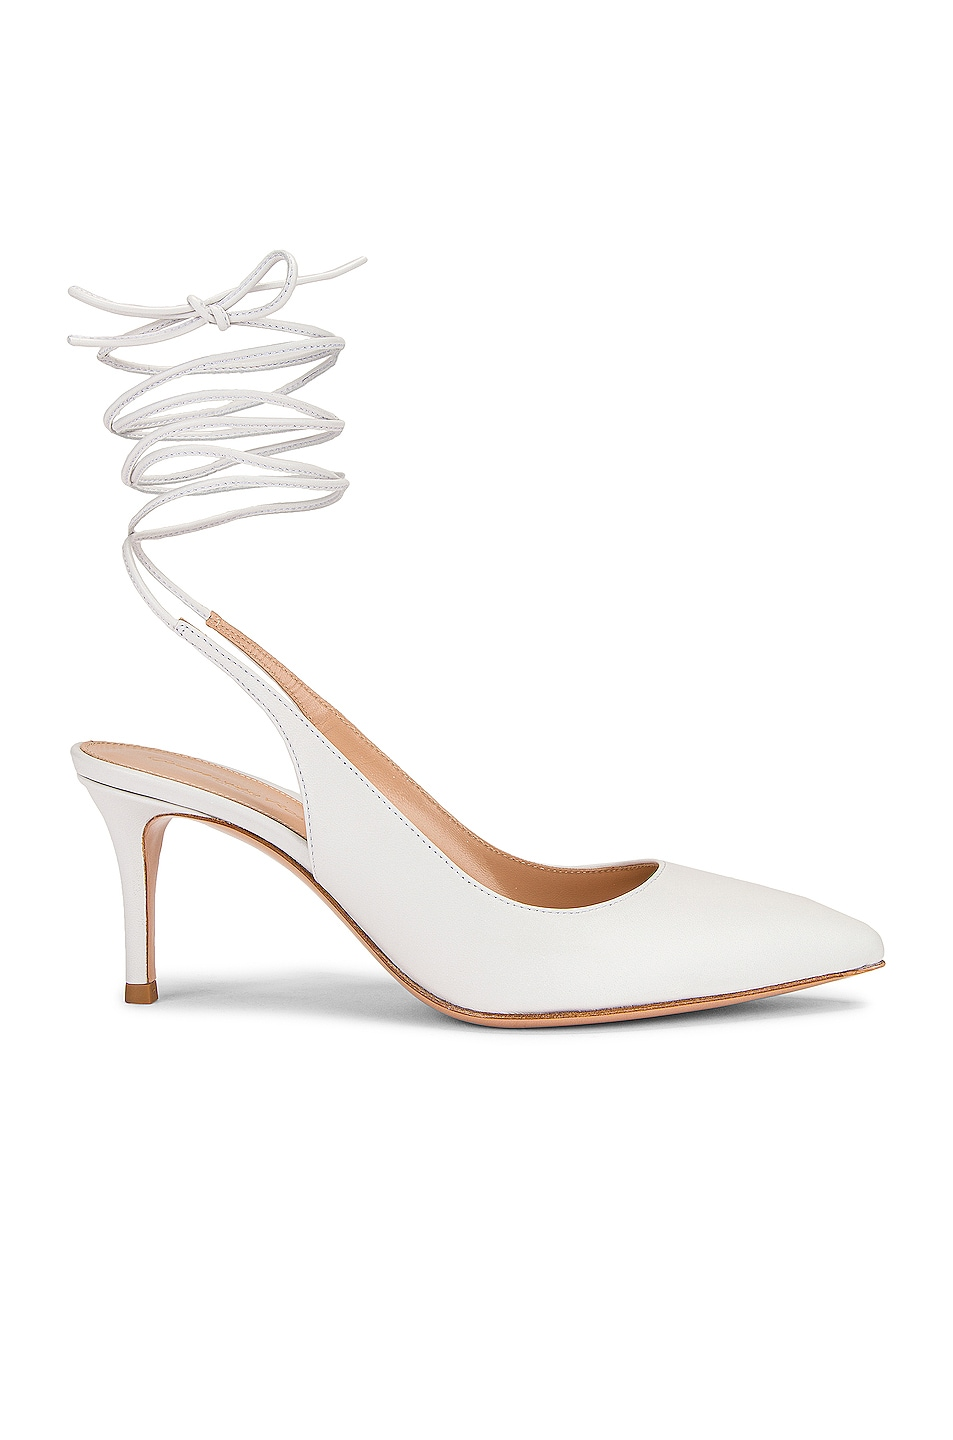 Image 1 of Gianvito Rossi Strappy Kitten Heel Pumps in White